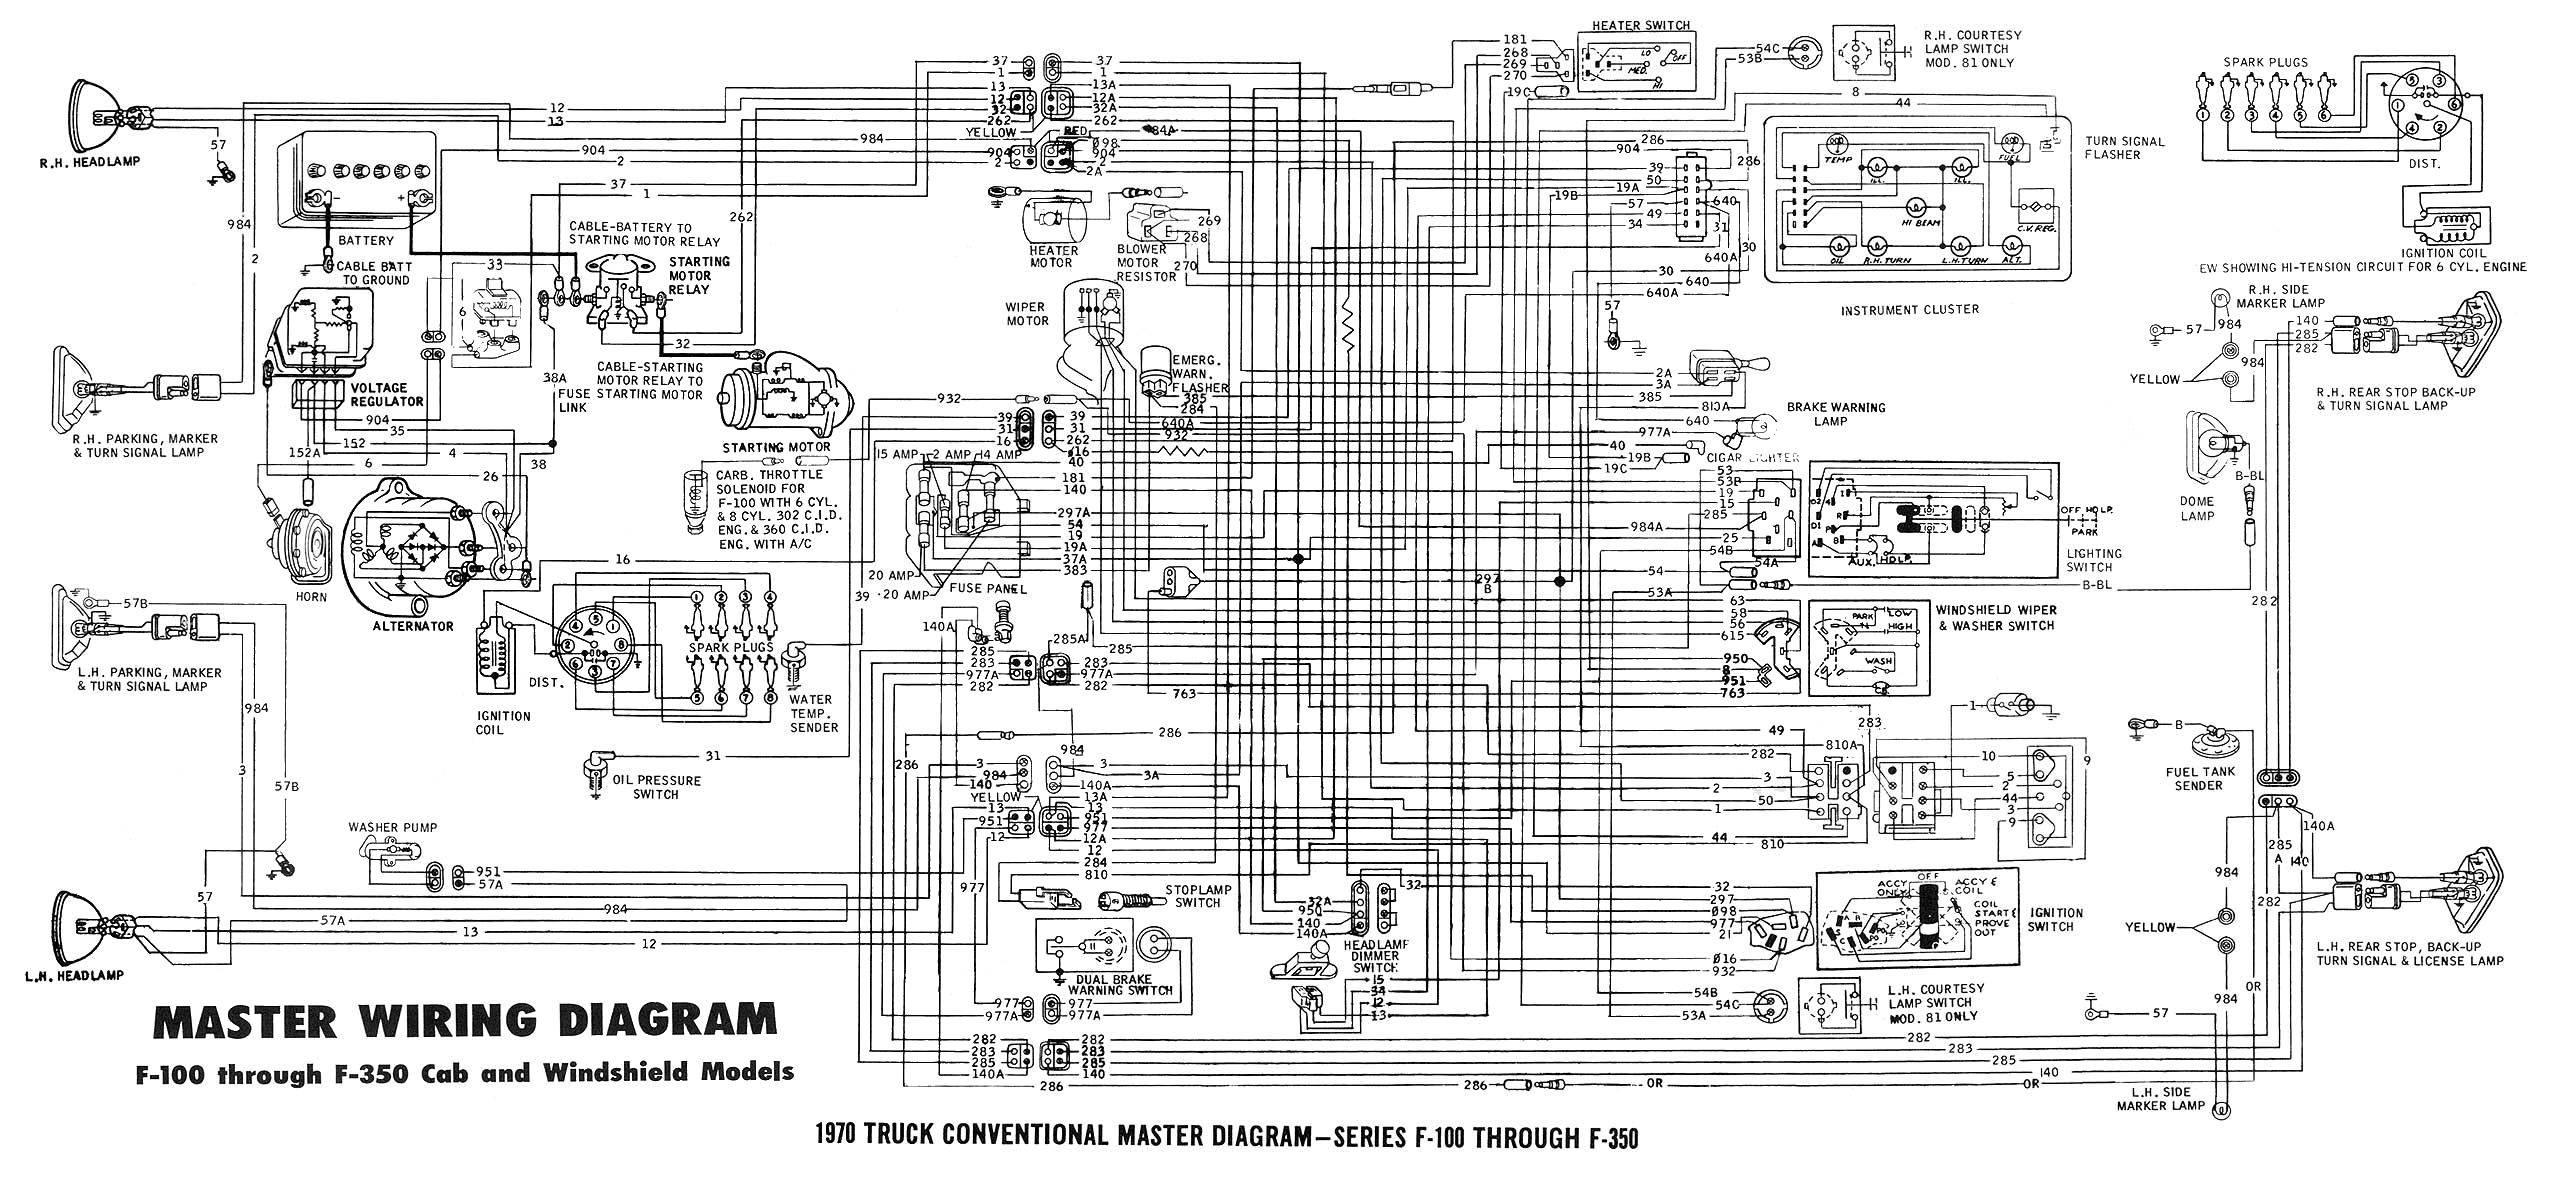 97 nissan truck wiring diagram nissan pick up no spark does not For Hot Tub Wiring Diagram Pdf nissan altima wiring diagram pdf wirdig wiring diagram on toyota pickup alternator wiring diagram also the Hot Springs Hot Tub Schematic